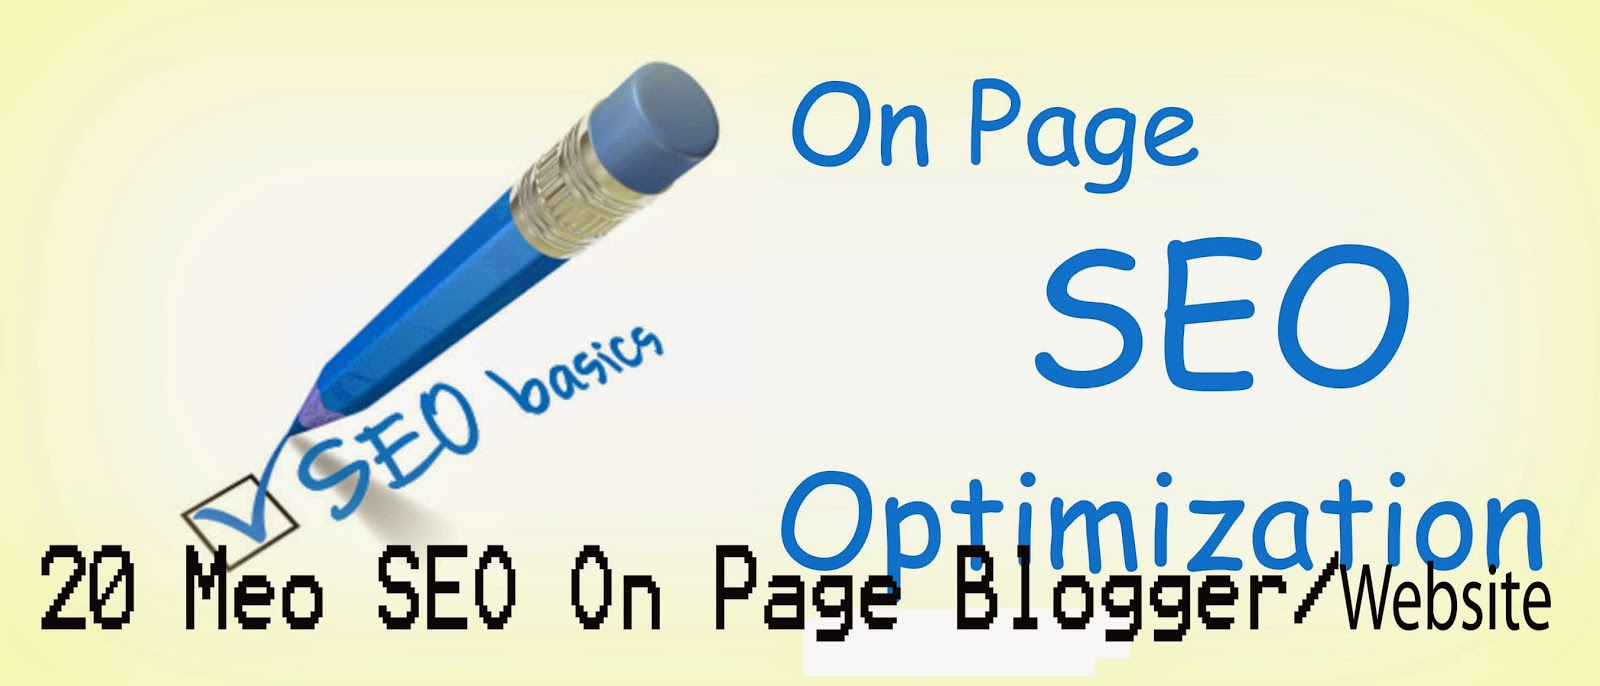 SEO On Page Blogger/Blogspot